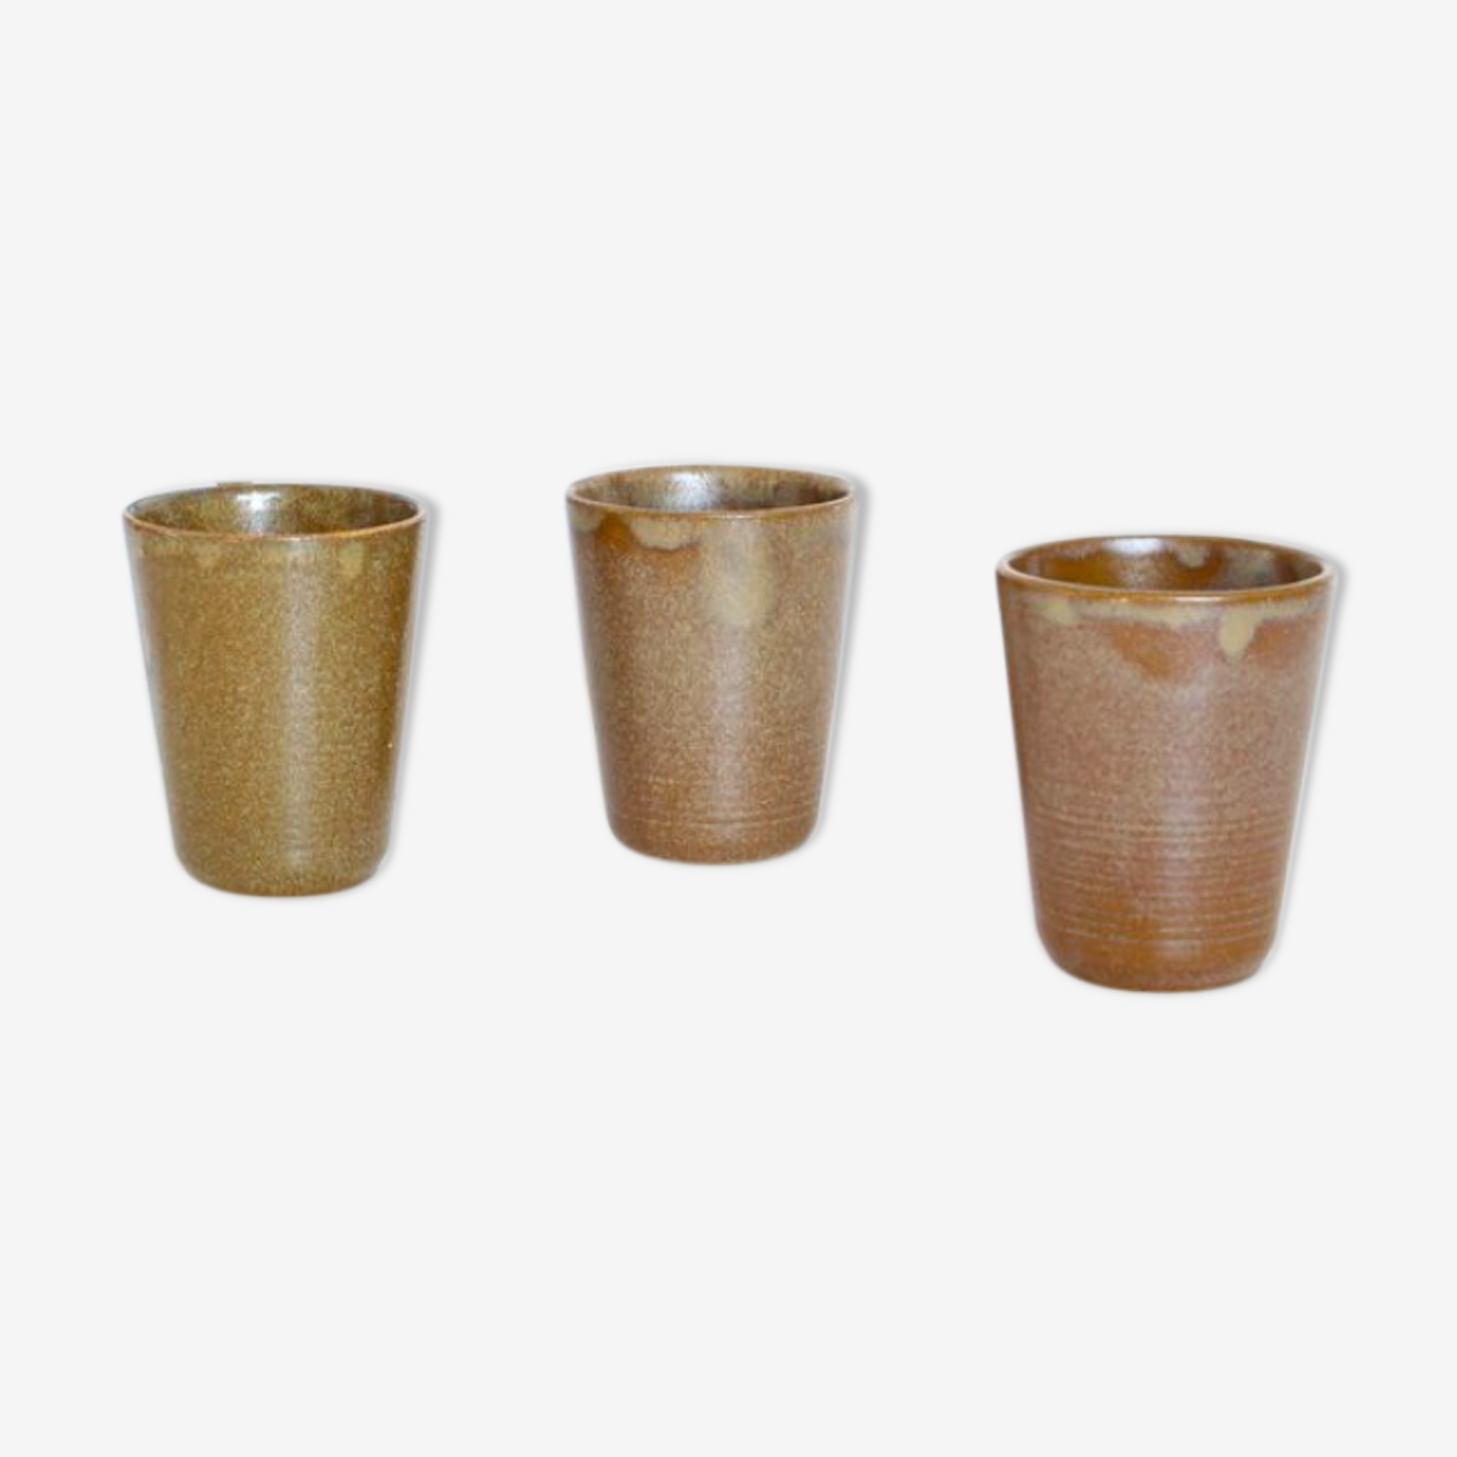 Set of 3 cups in sandstone of Digoin